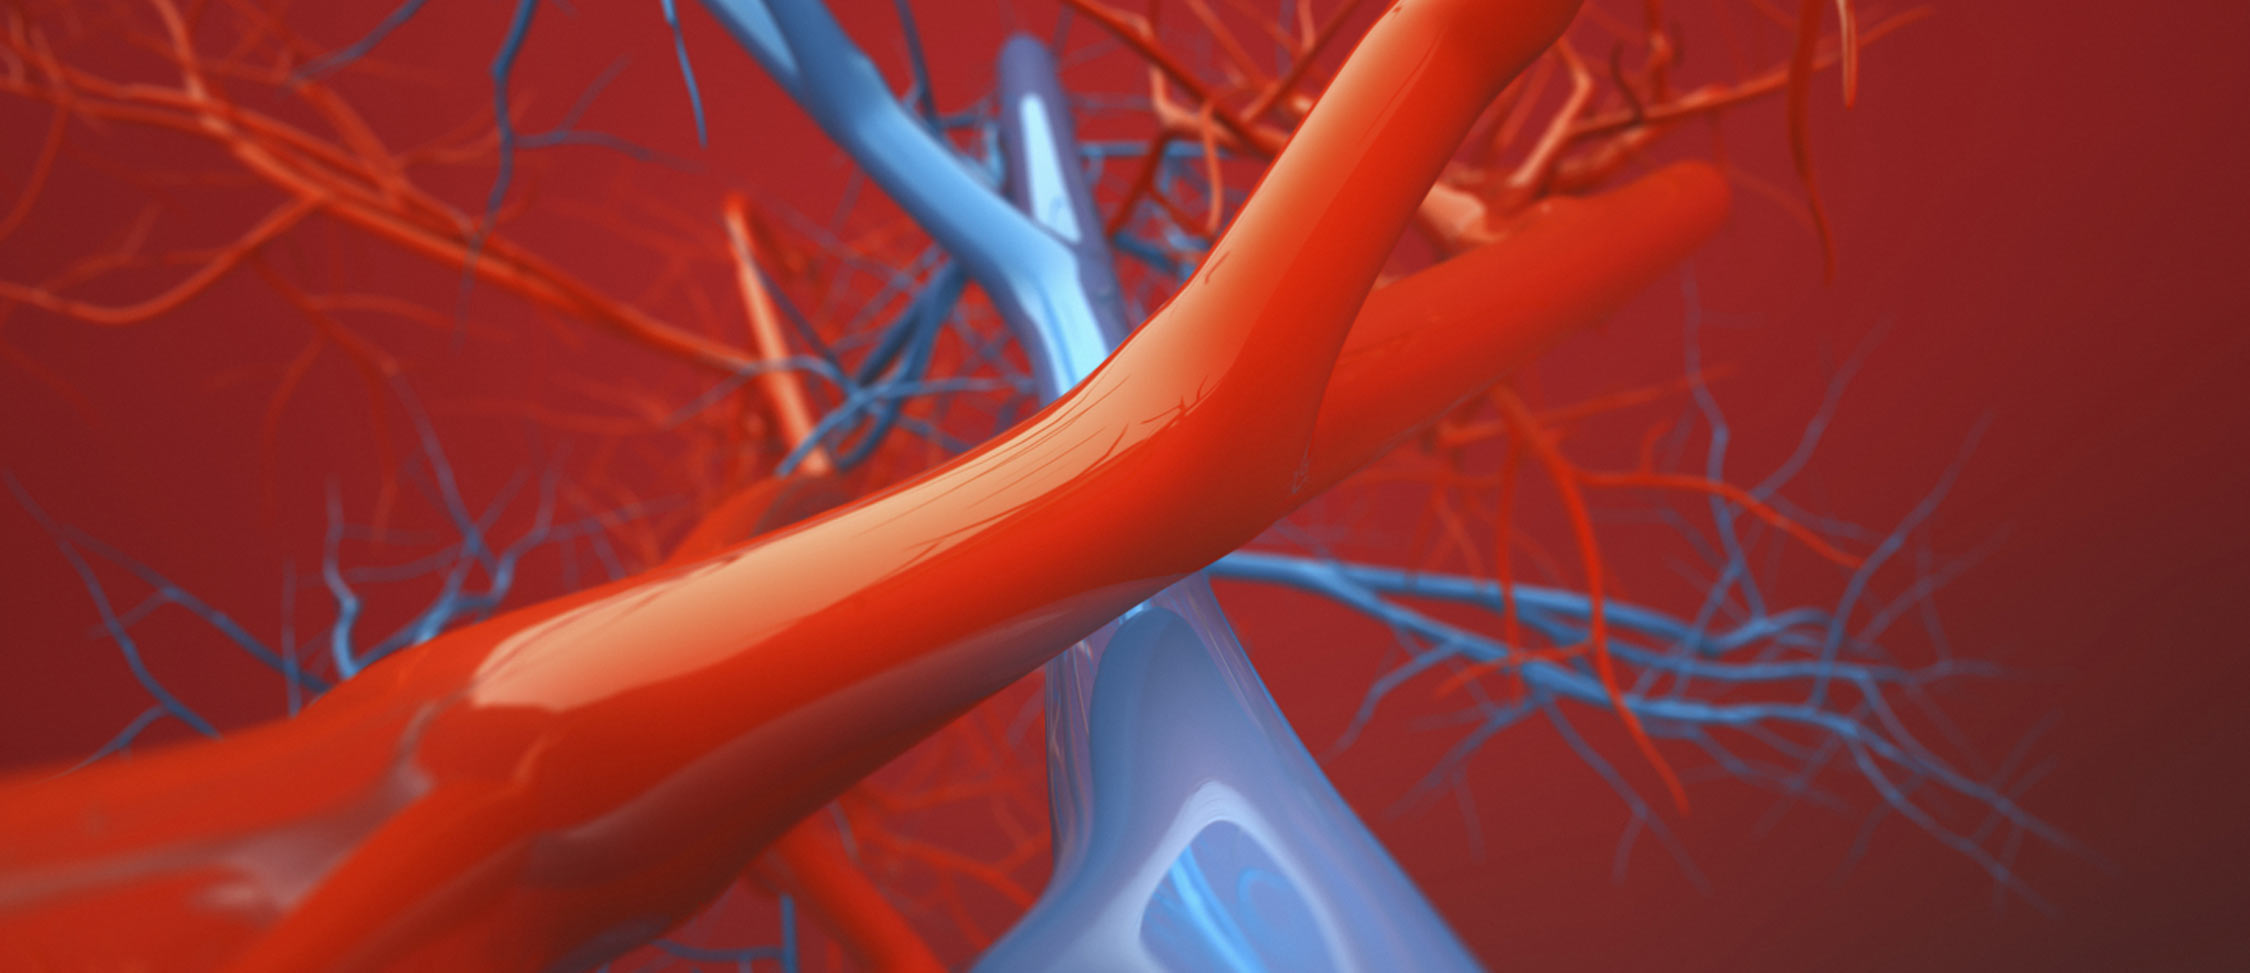 St. Louis Vein Experts - May-Thurner Syndrome